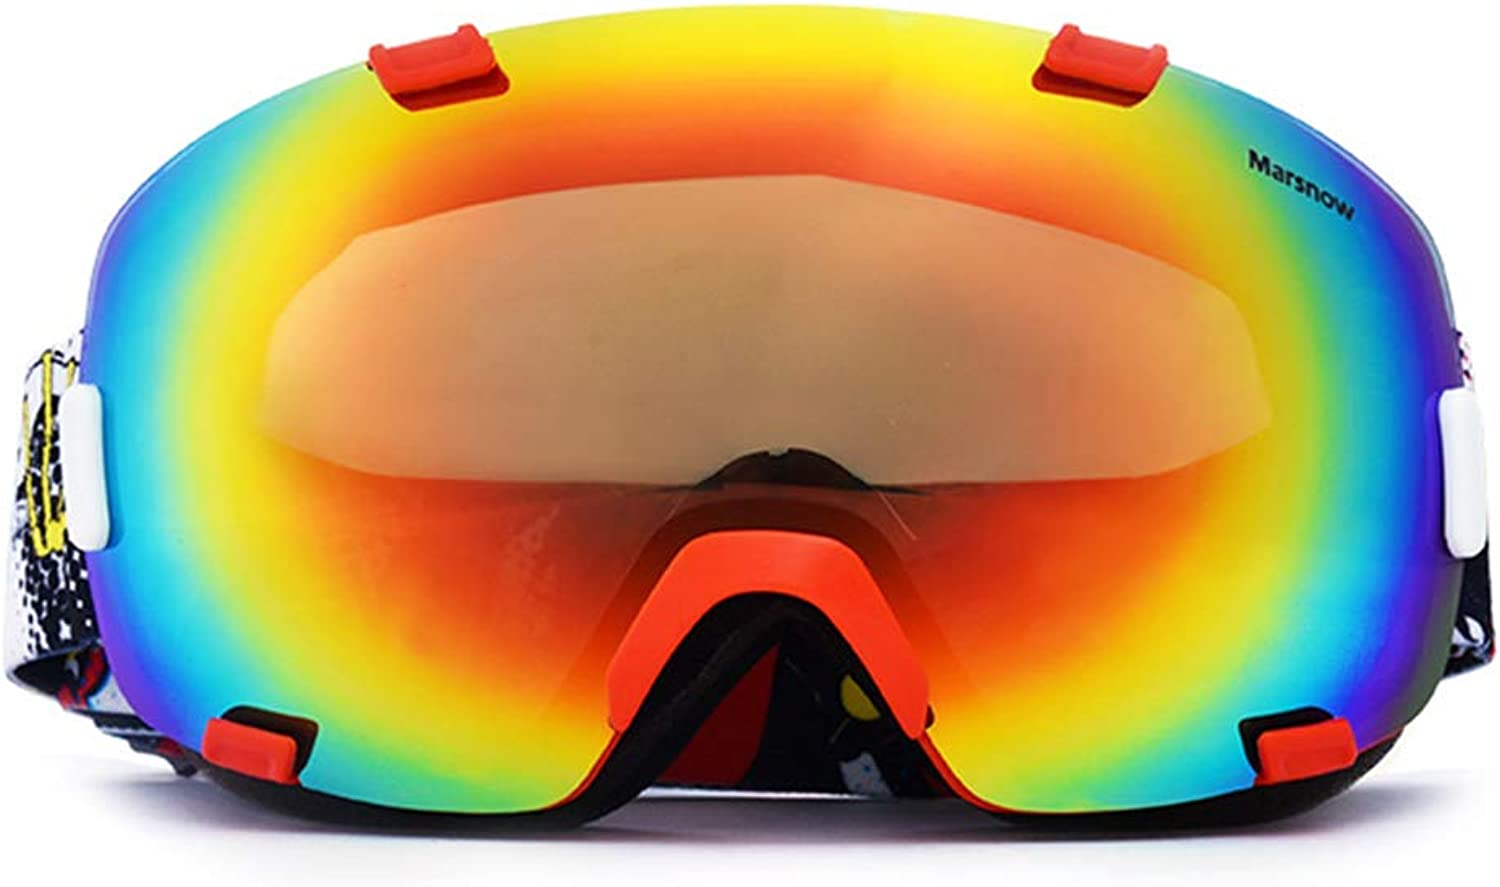 RKY Ski goggles Ski gogglesTPU PC, detachable lens, silicone non-slip tape, can bring into myopia, tough frame, adult ski and climbing super large spherical wind goggles8 colors to choose from